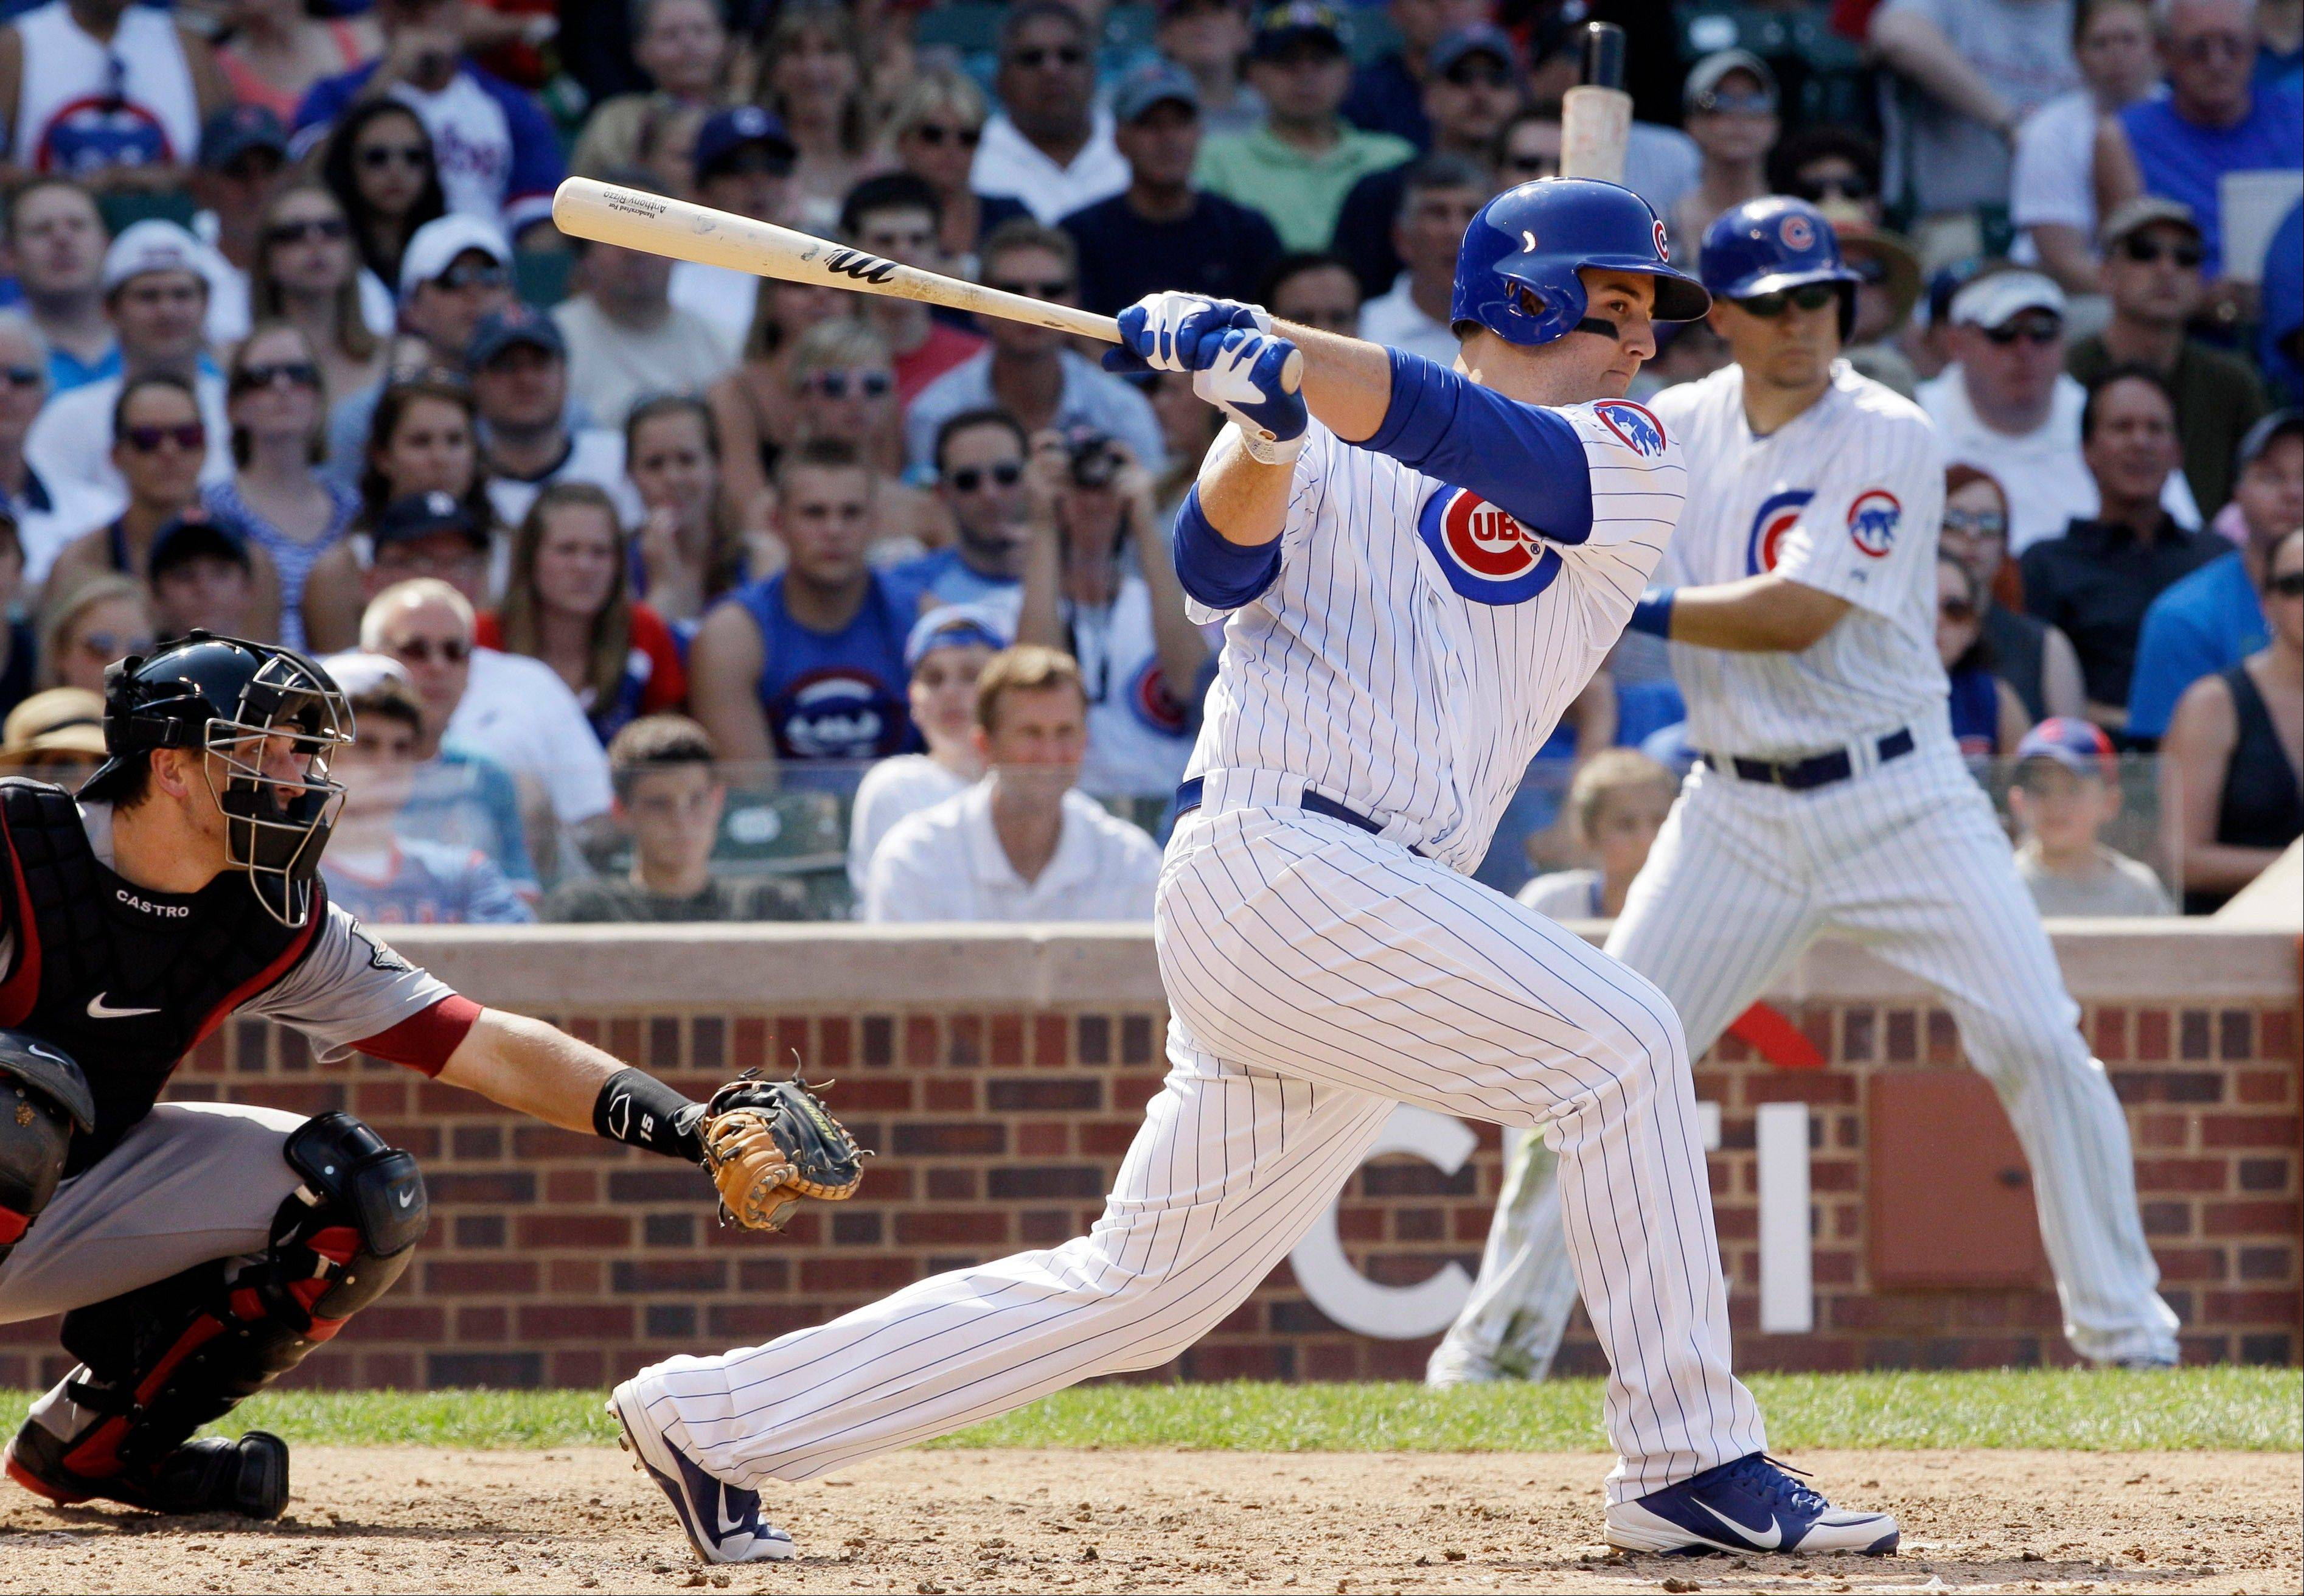 Anthony Rizzo is hitting .323 since being called up by the Cubs.